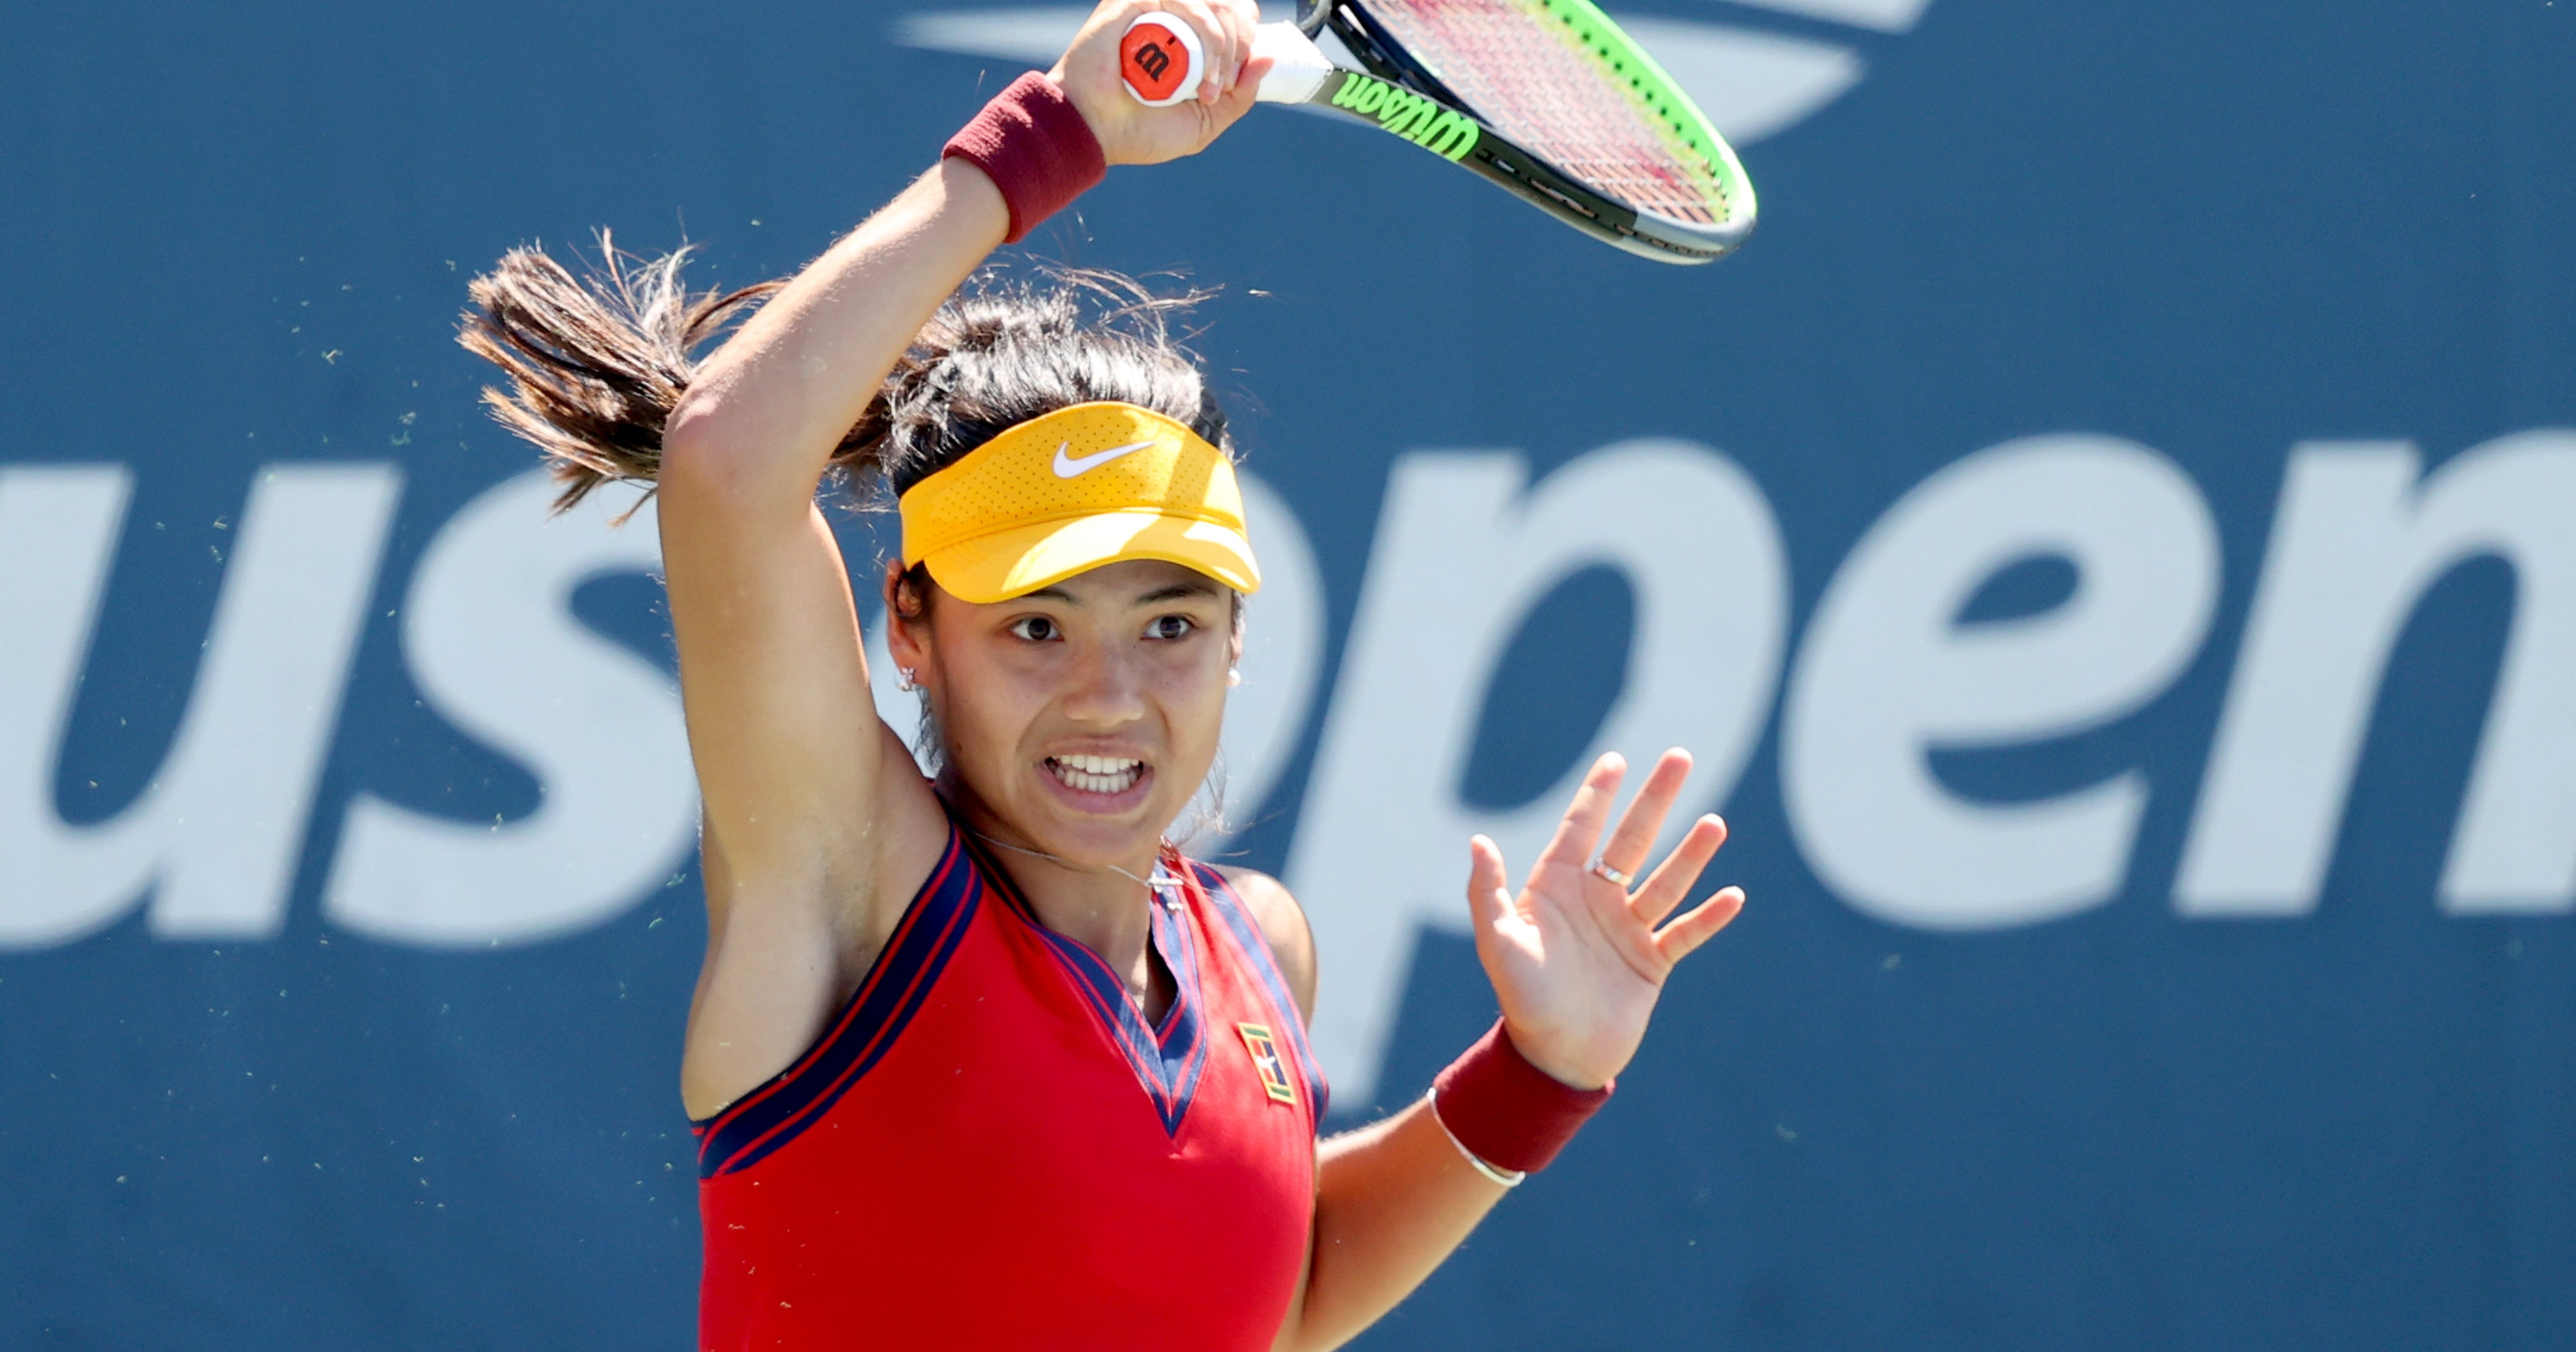 'What A Superstar': The Internet Reacts To Emma Raducanu's Historic US Open Win